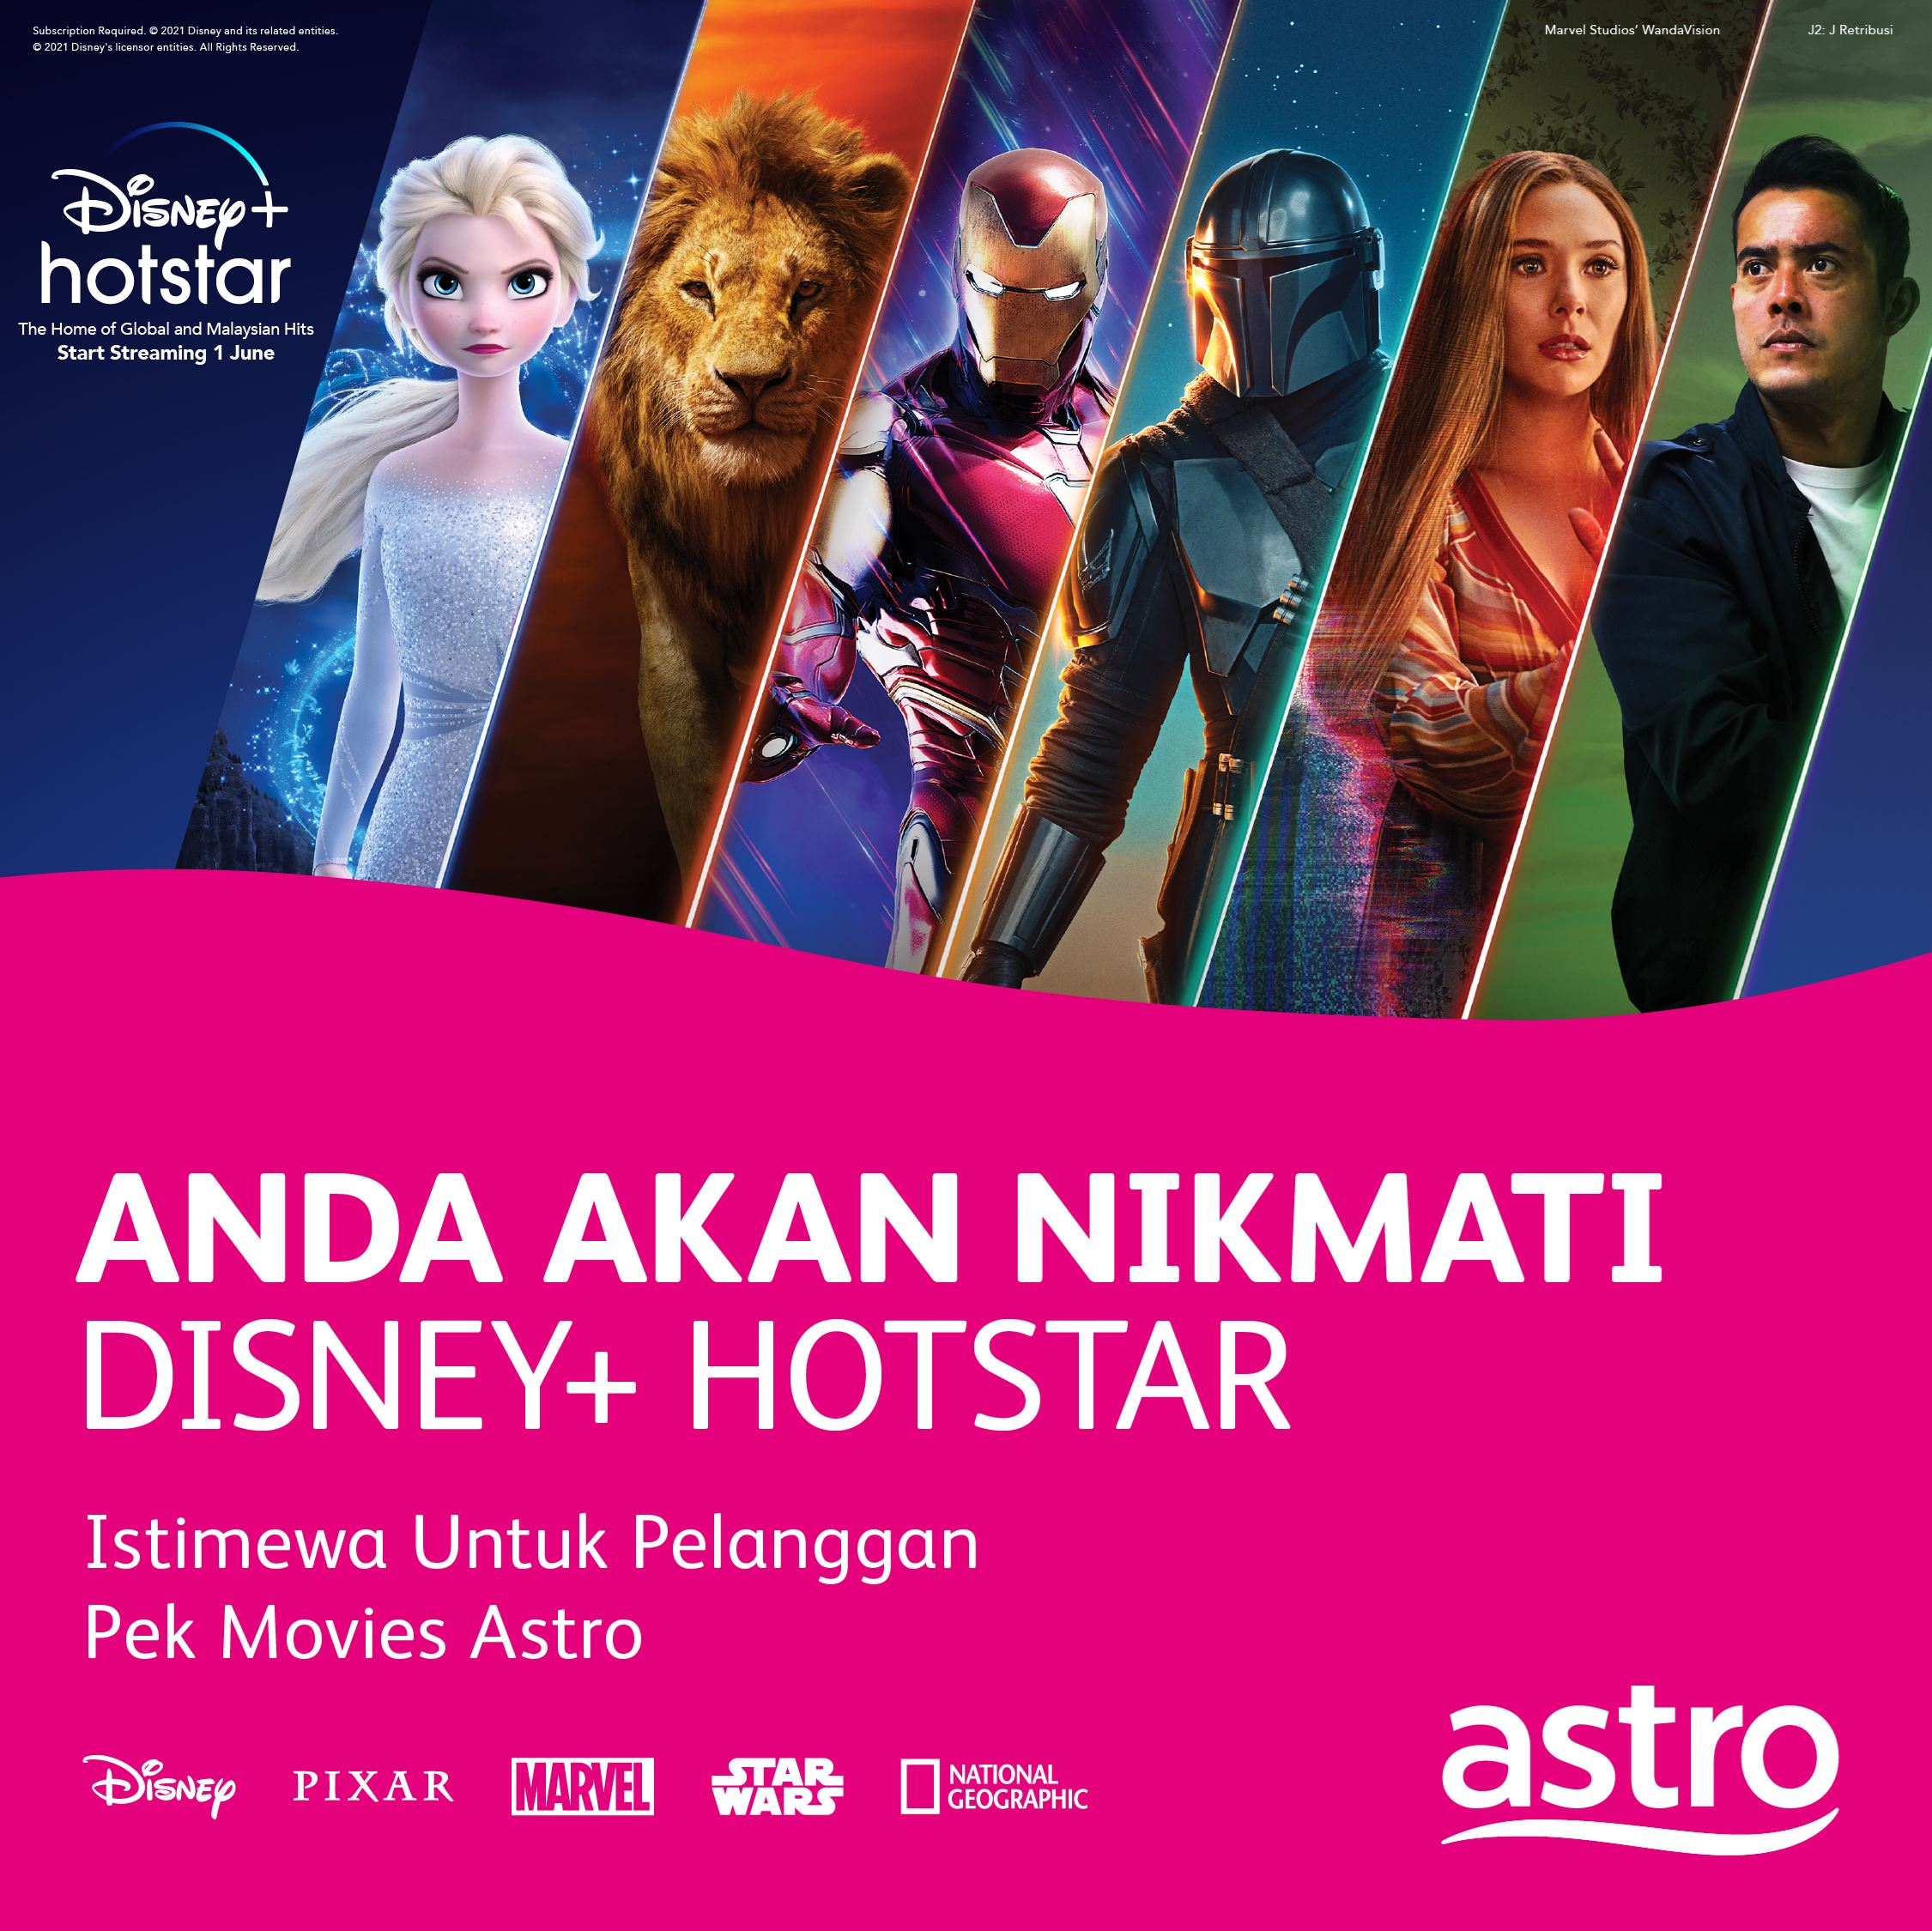 astro customers can enjoy over 800 disney films starting 1st june!